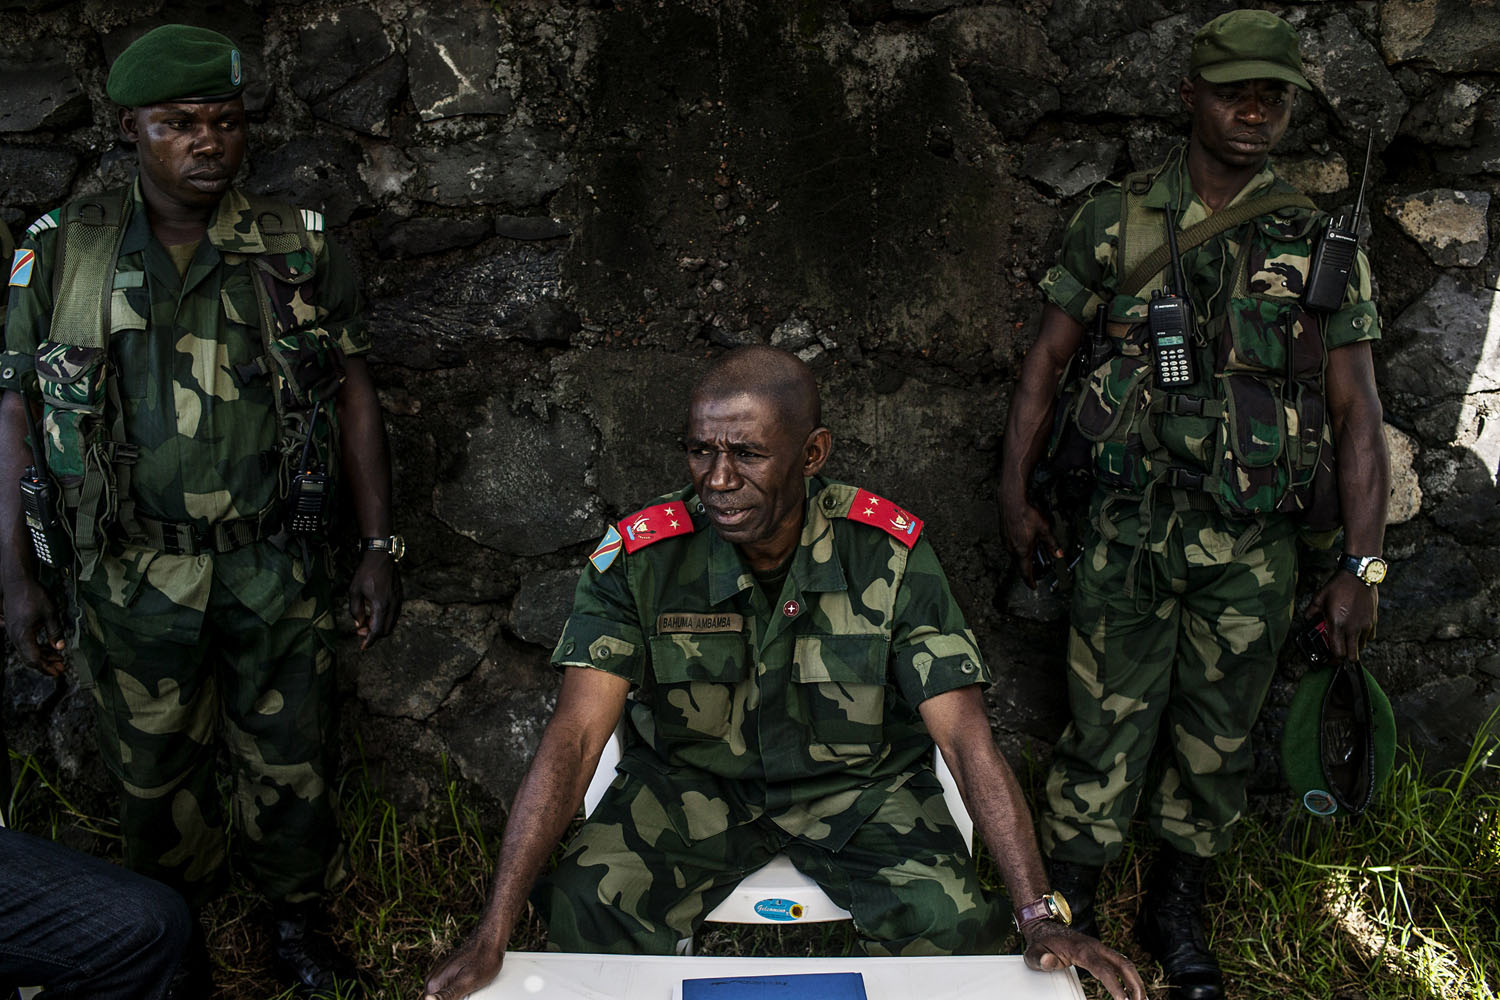 General Bahuma Ambamba, the commanding officer of all FARDC forces in eastern Congo's North Kivu Province, sits with his personal guards inside the FARDC command center in Munigi, outside Goma. General Bahuma was brought into command following the fall of Goma last year to M-23 rebels. Beyond suppressing the M-23 rebellion, which is the largest and most threatening rebellion in eastern Congo at the moment, Bahuma also has ambitions of reforming the way in which the FARDC functions.